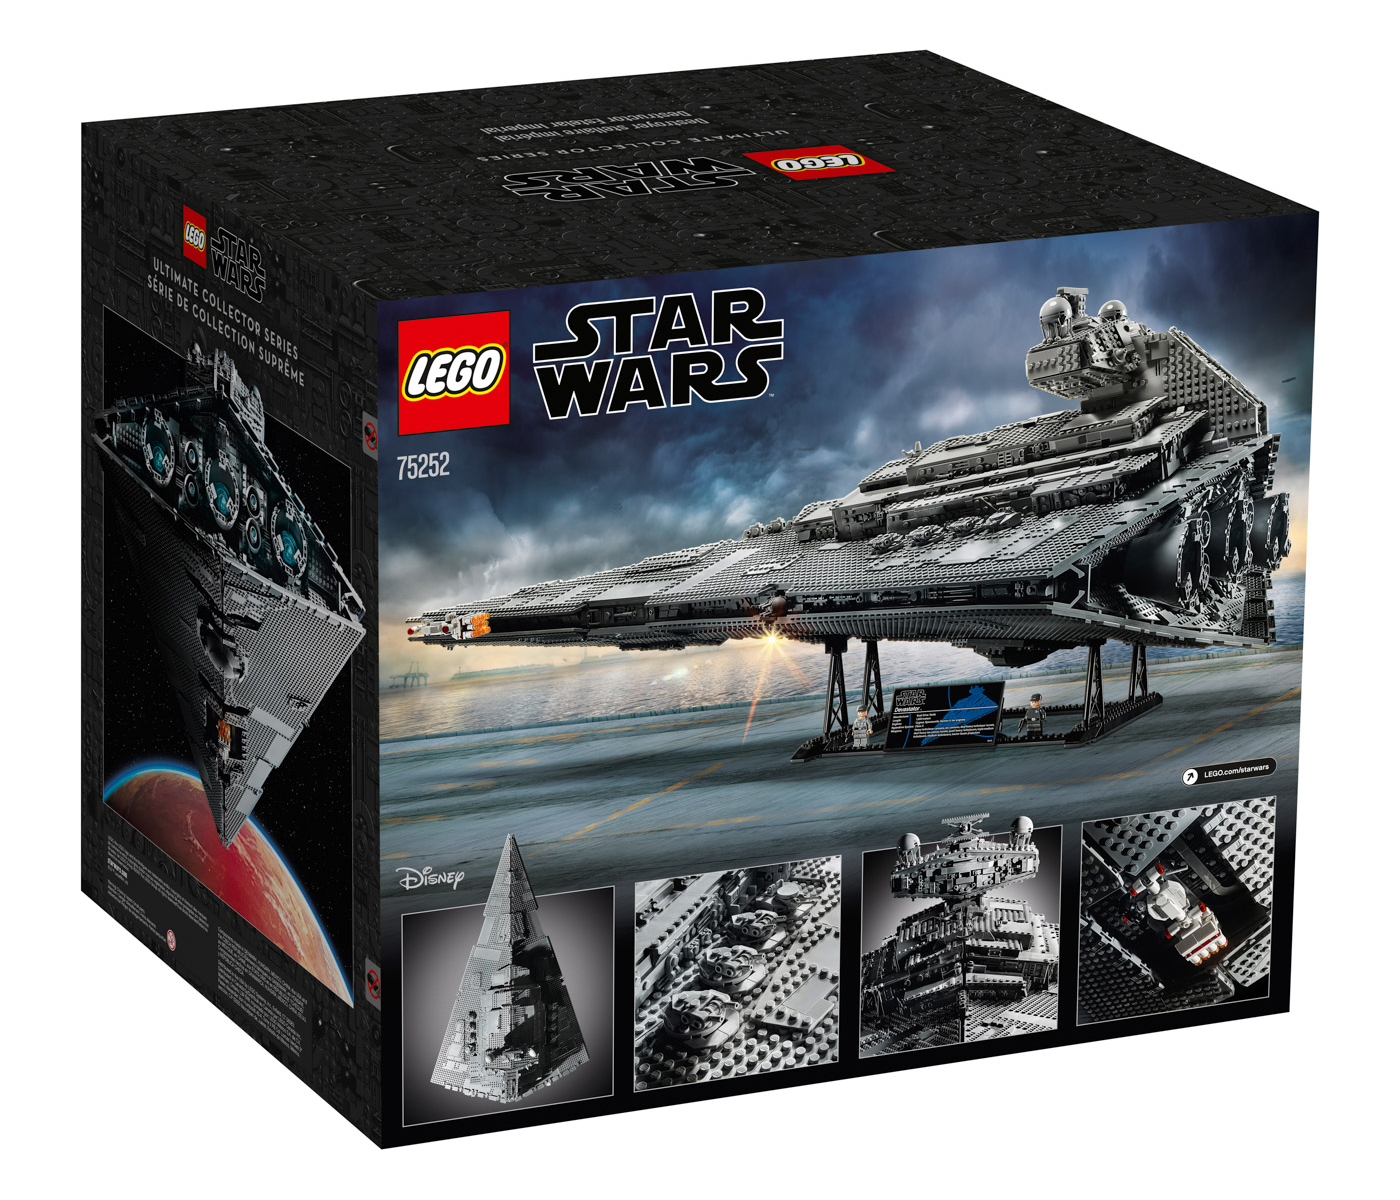 Lego Ucs Imperial Star Destroyer Has Nearly 5 000 Pieces